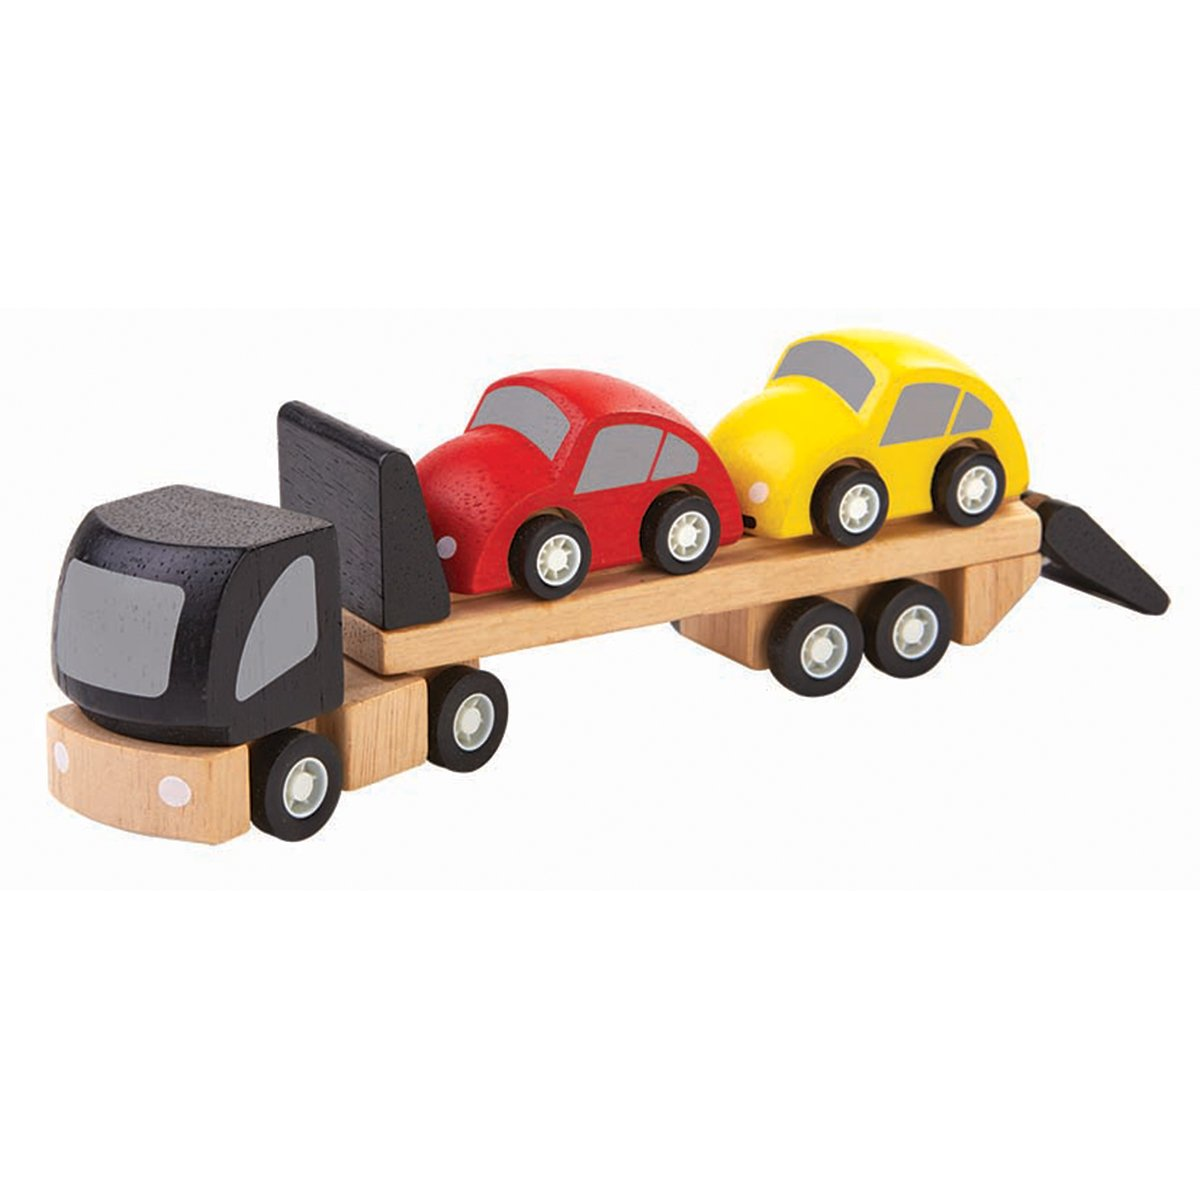 Plantoys Biltransport +3 år